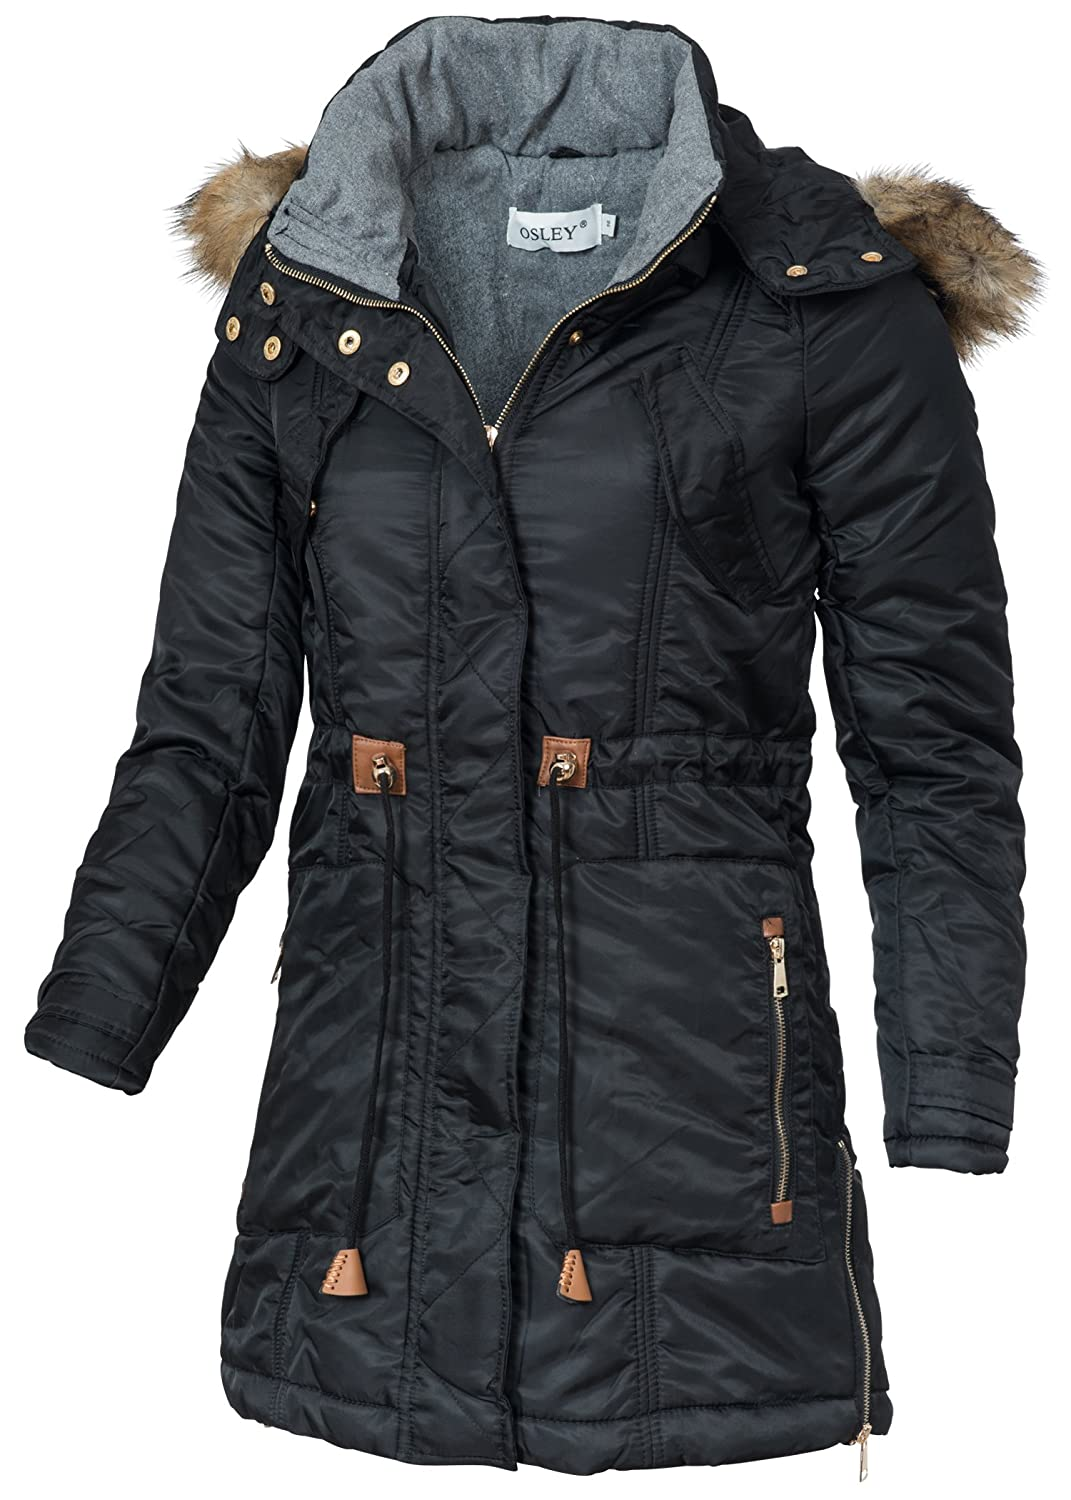 in vogue Damen Wintermantel IV065, warmer Mantel mit Kordelzug, Kapuze & Webpelz, schwarz